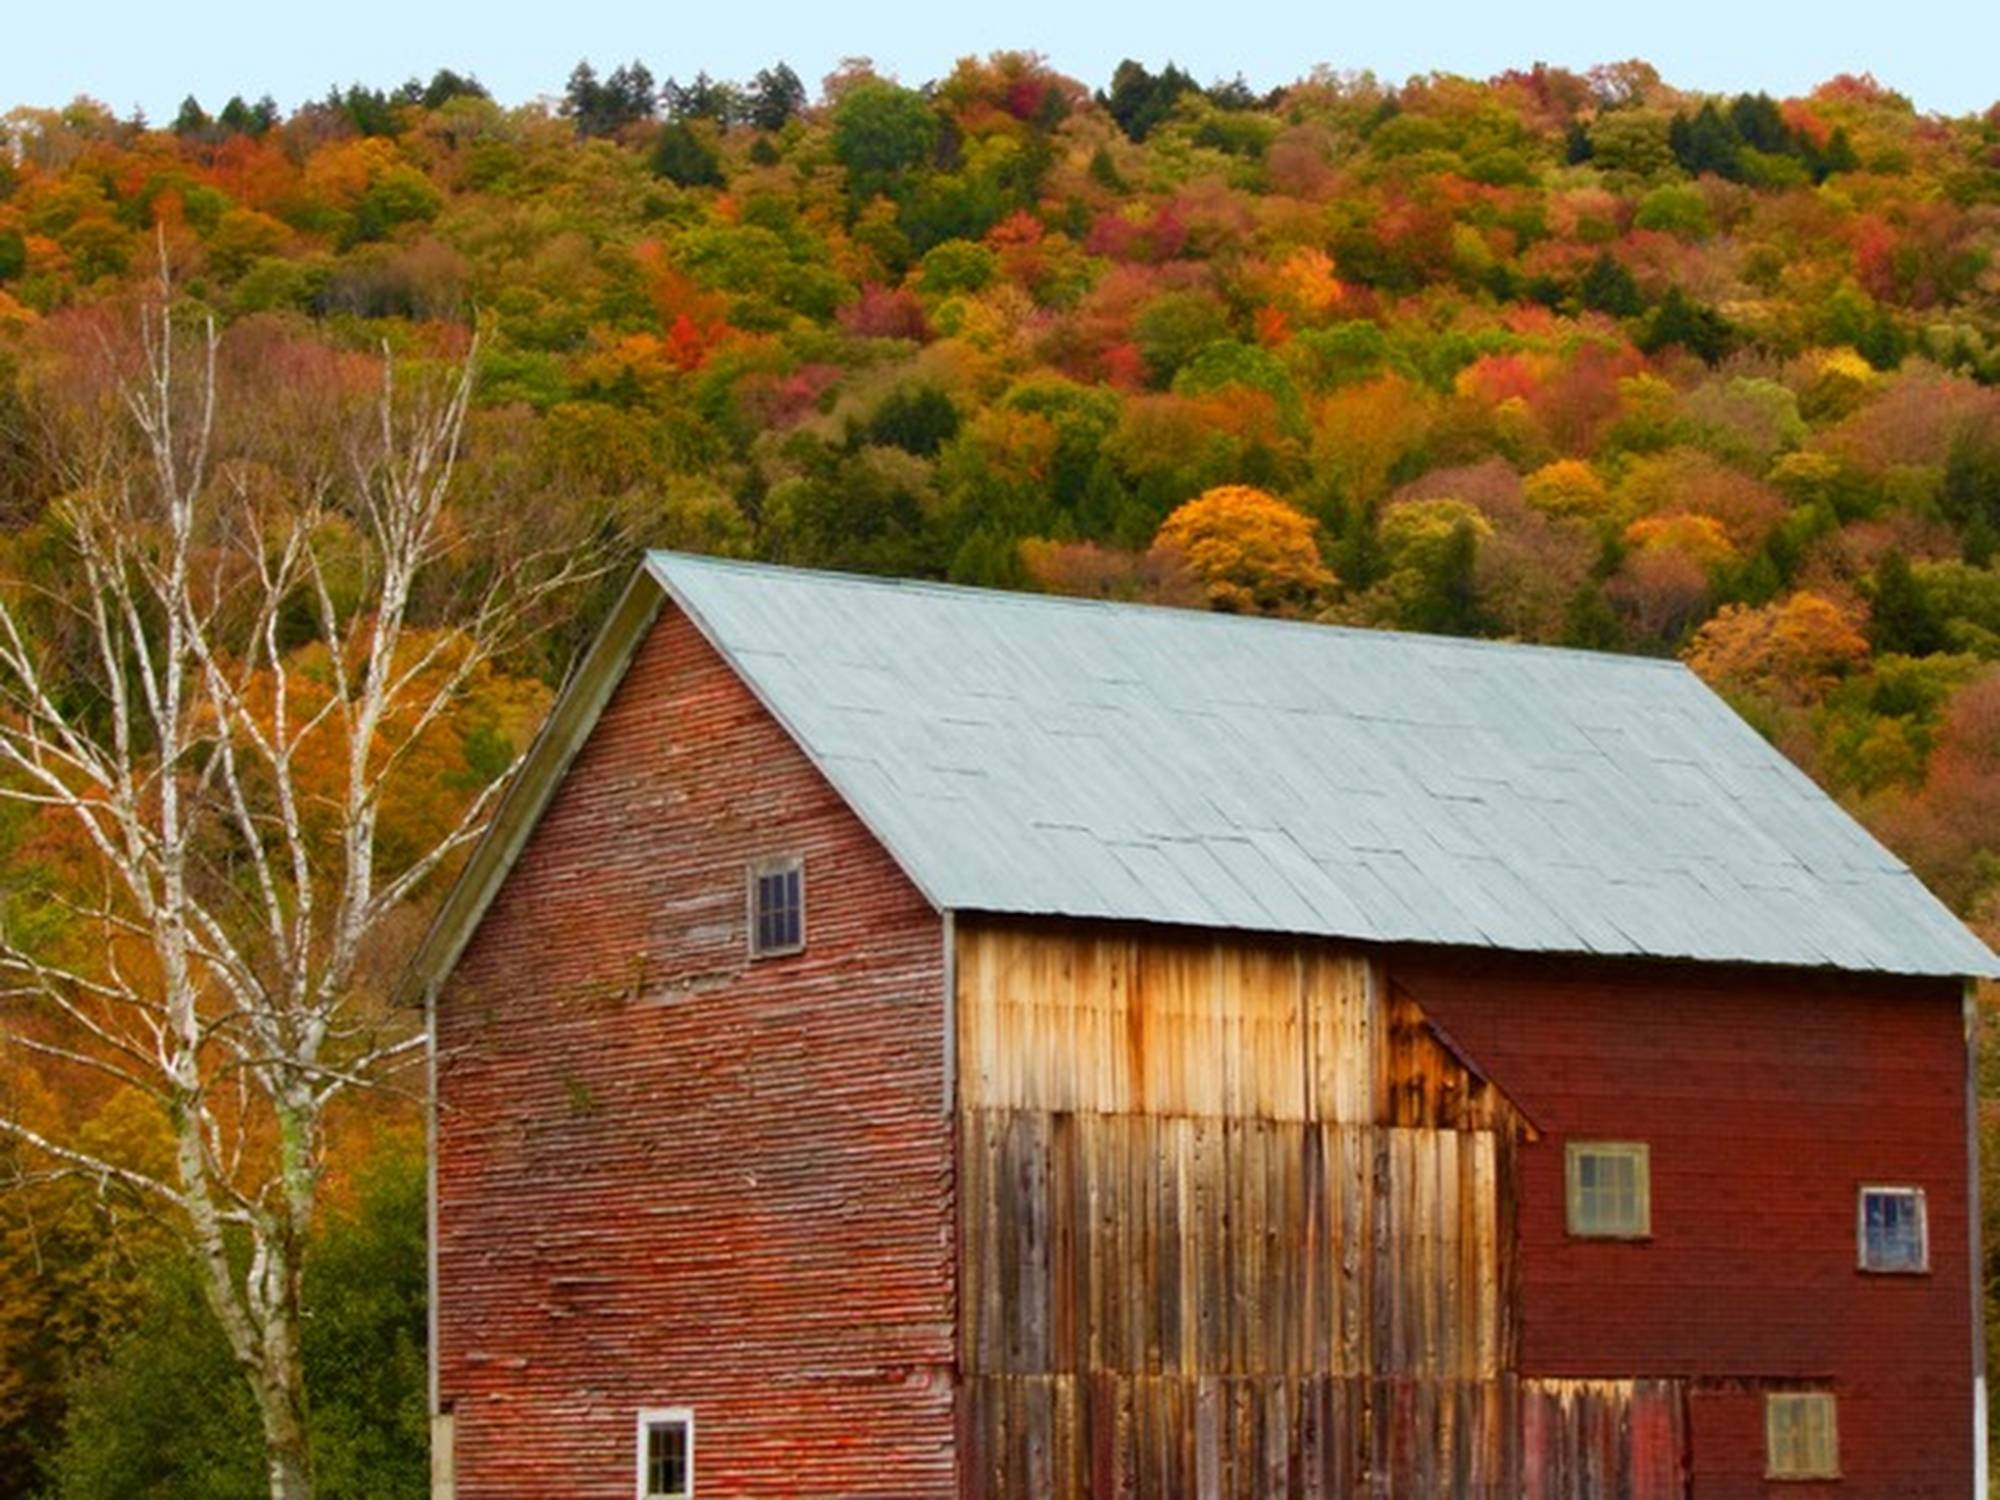 Fall is my favorite season, and I love old barns. I liked the contrast between the foliage, the bare tree, and the old barn boards. this photo was taken last year in Vermont.